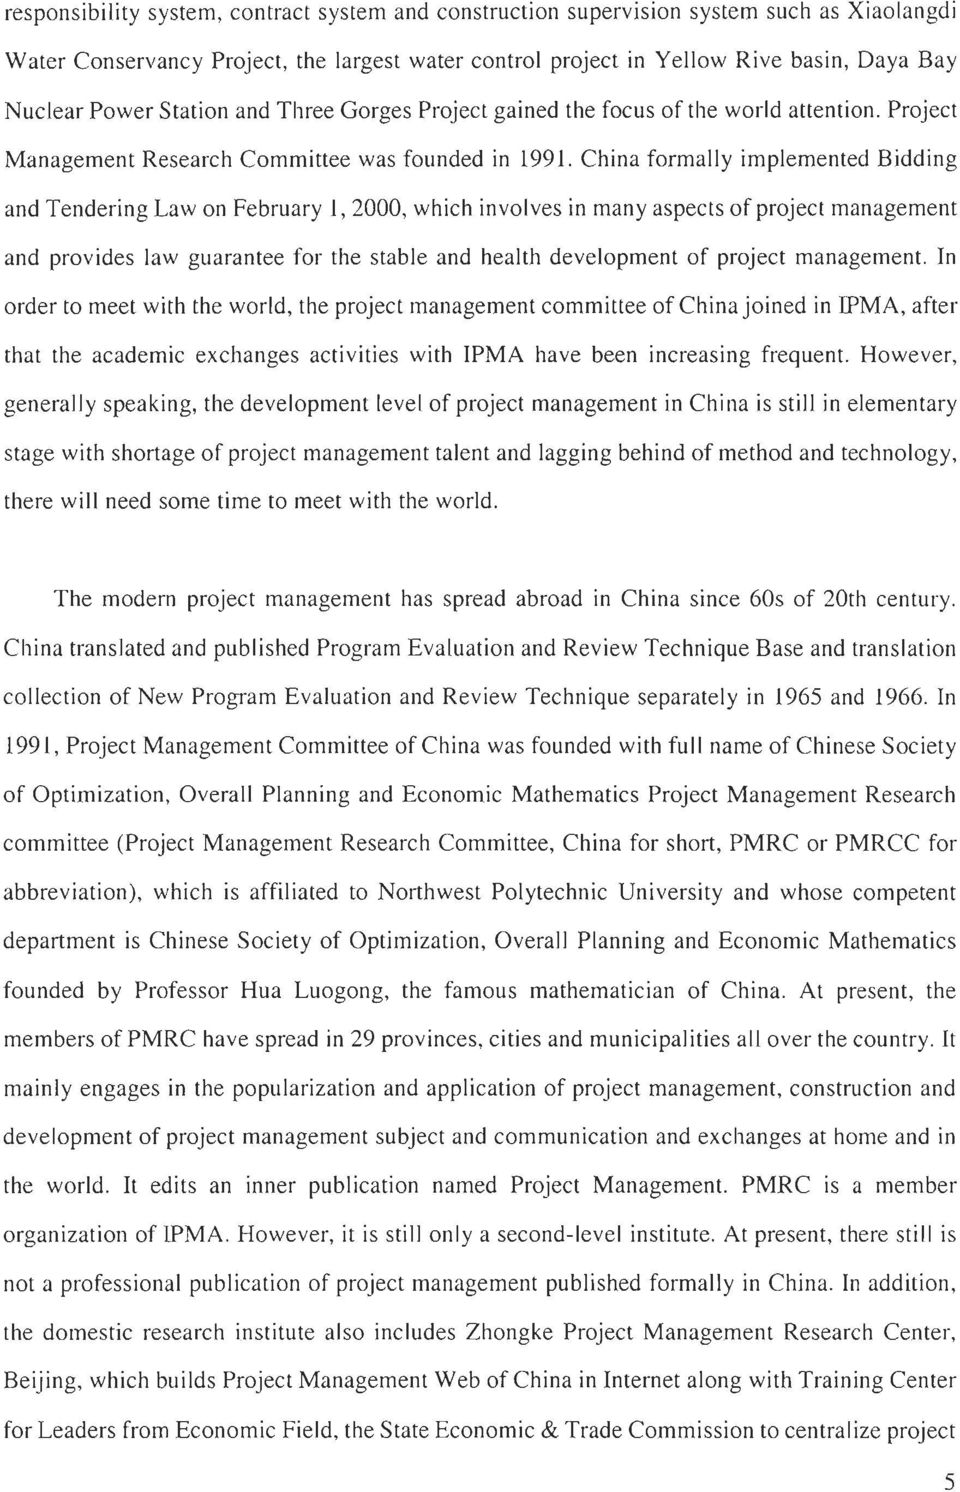 China formally implemented B idding and Tendering Law on February 1,2000, which in vol ves in many aspects of project management and provides law guarantee for the stable and health development of